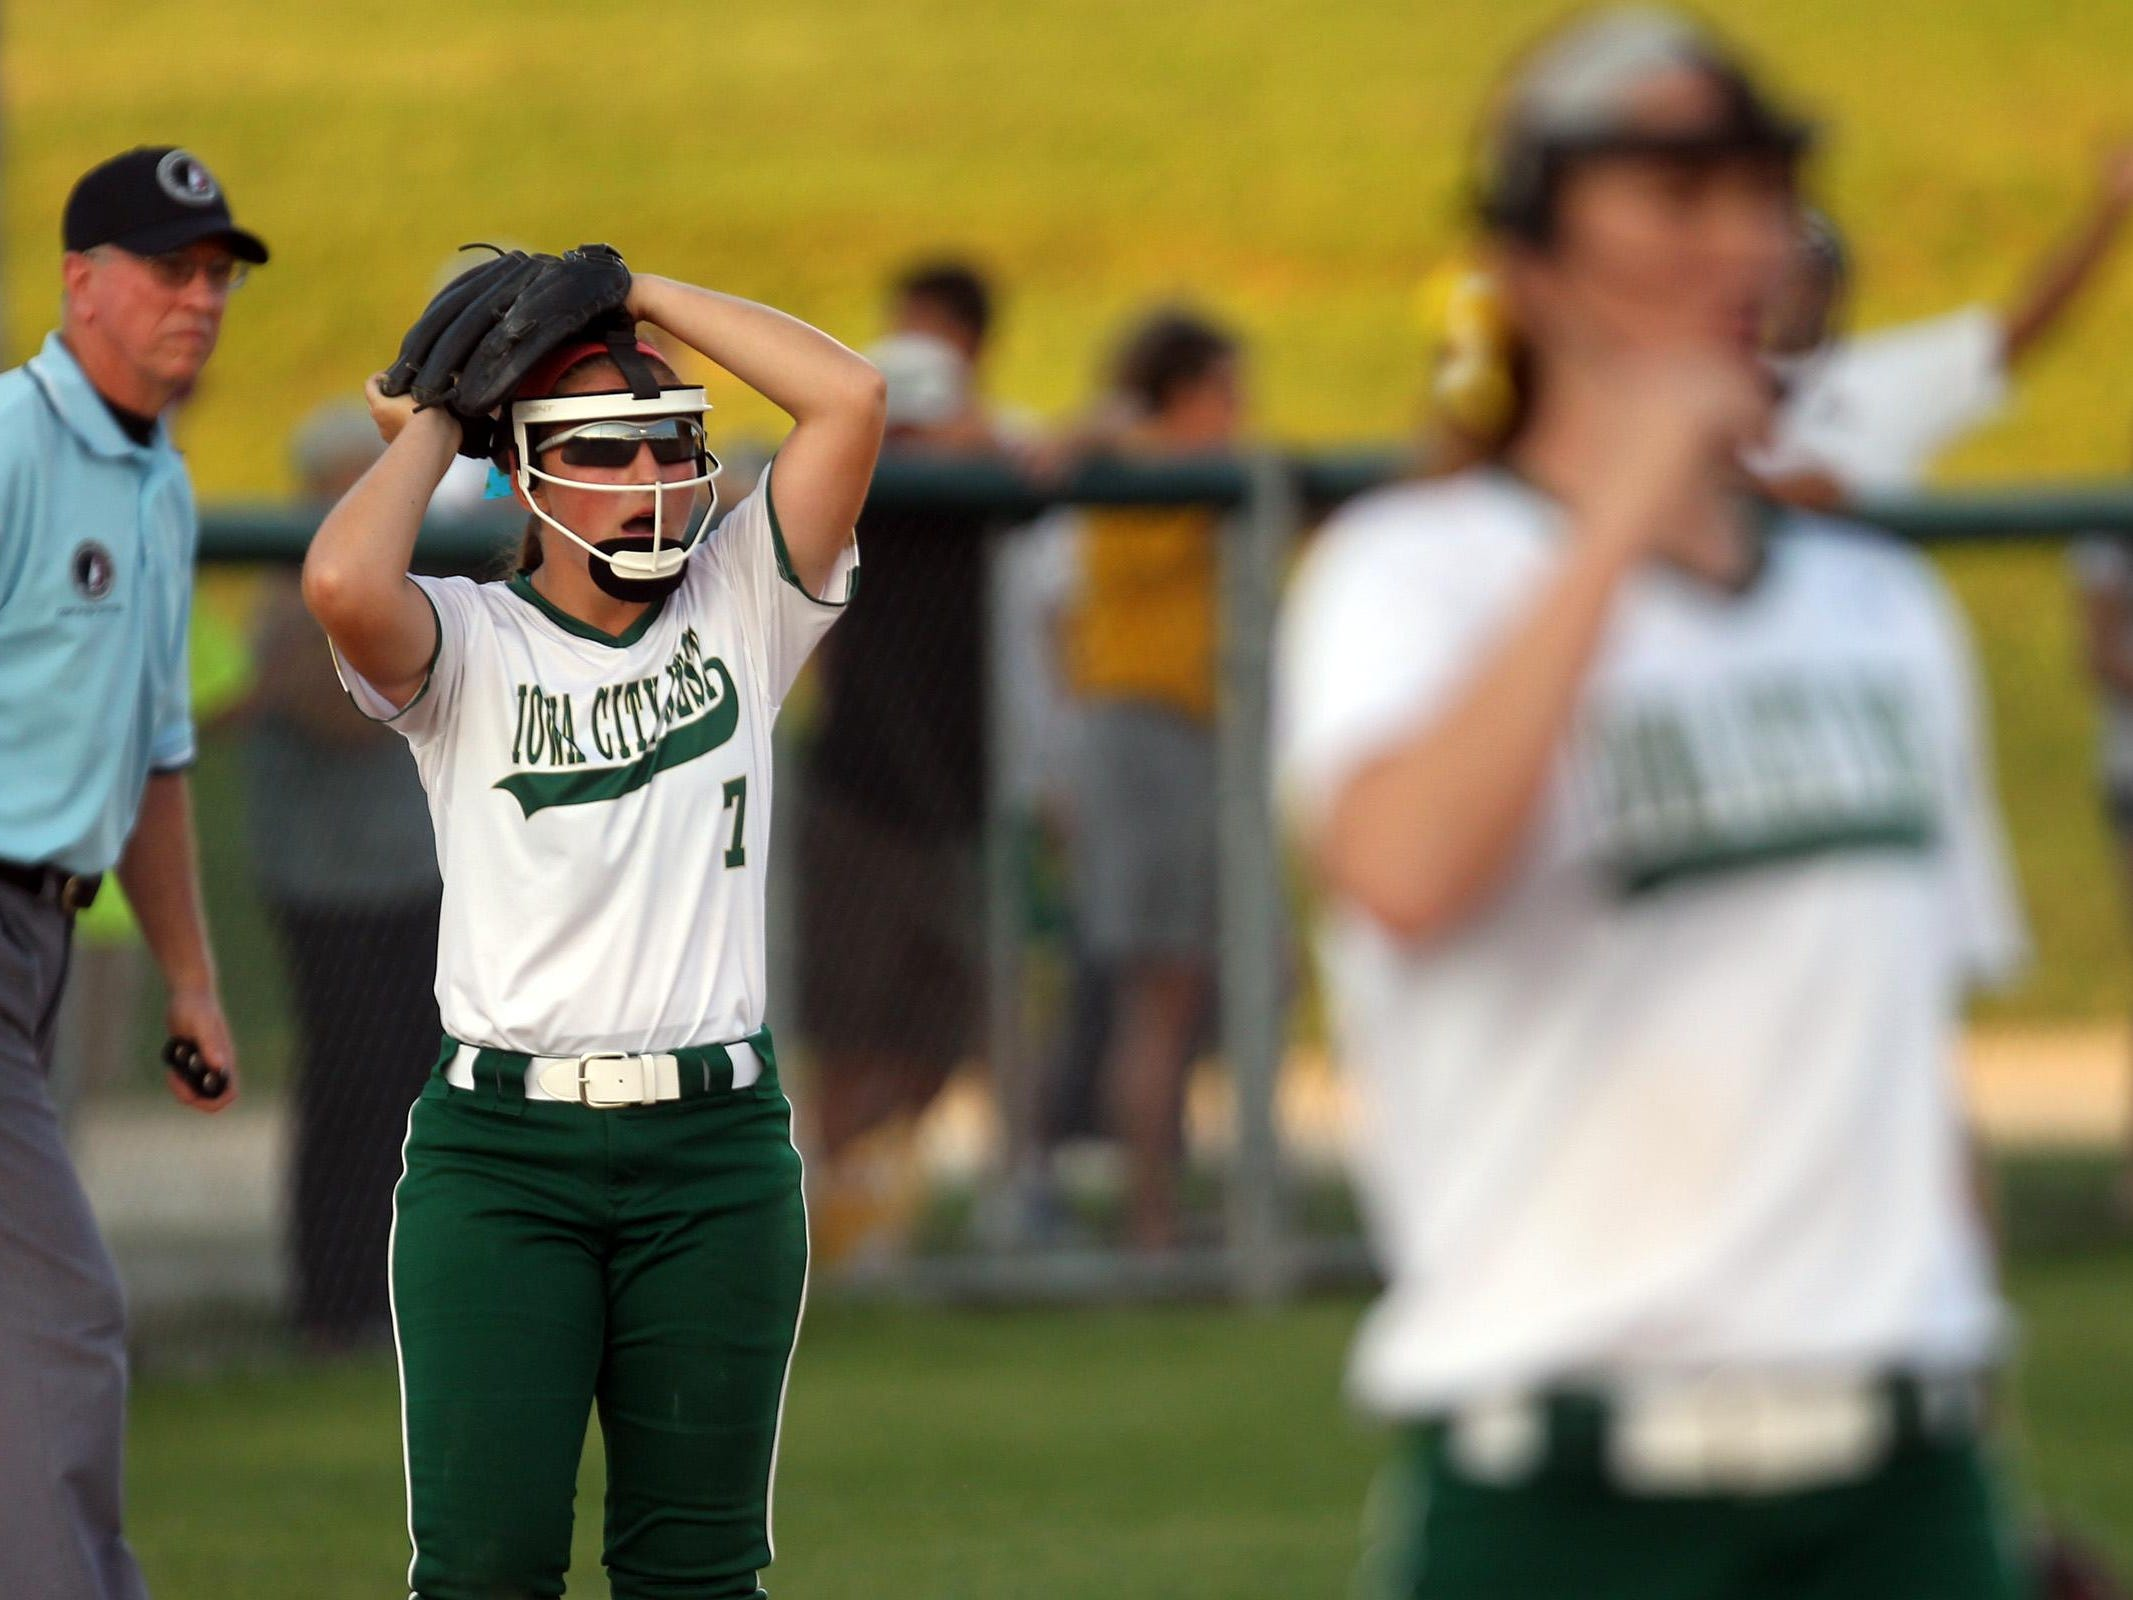 West High's Adara Opiola reacts to a call during the Women of Troy's Class 5A regional championship game against Ankeny at West High on Tuesday, July 14, 2015. Ankeny won, 3-1, to head to state. David Scrivner / Iowa City Press-Citizen